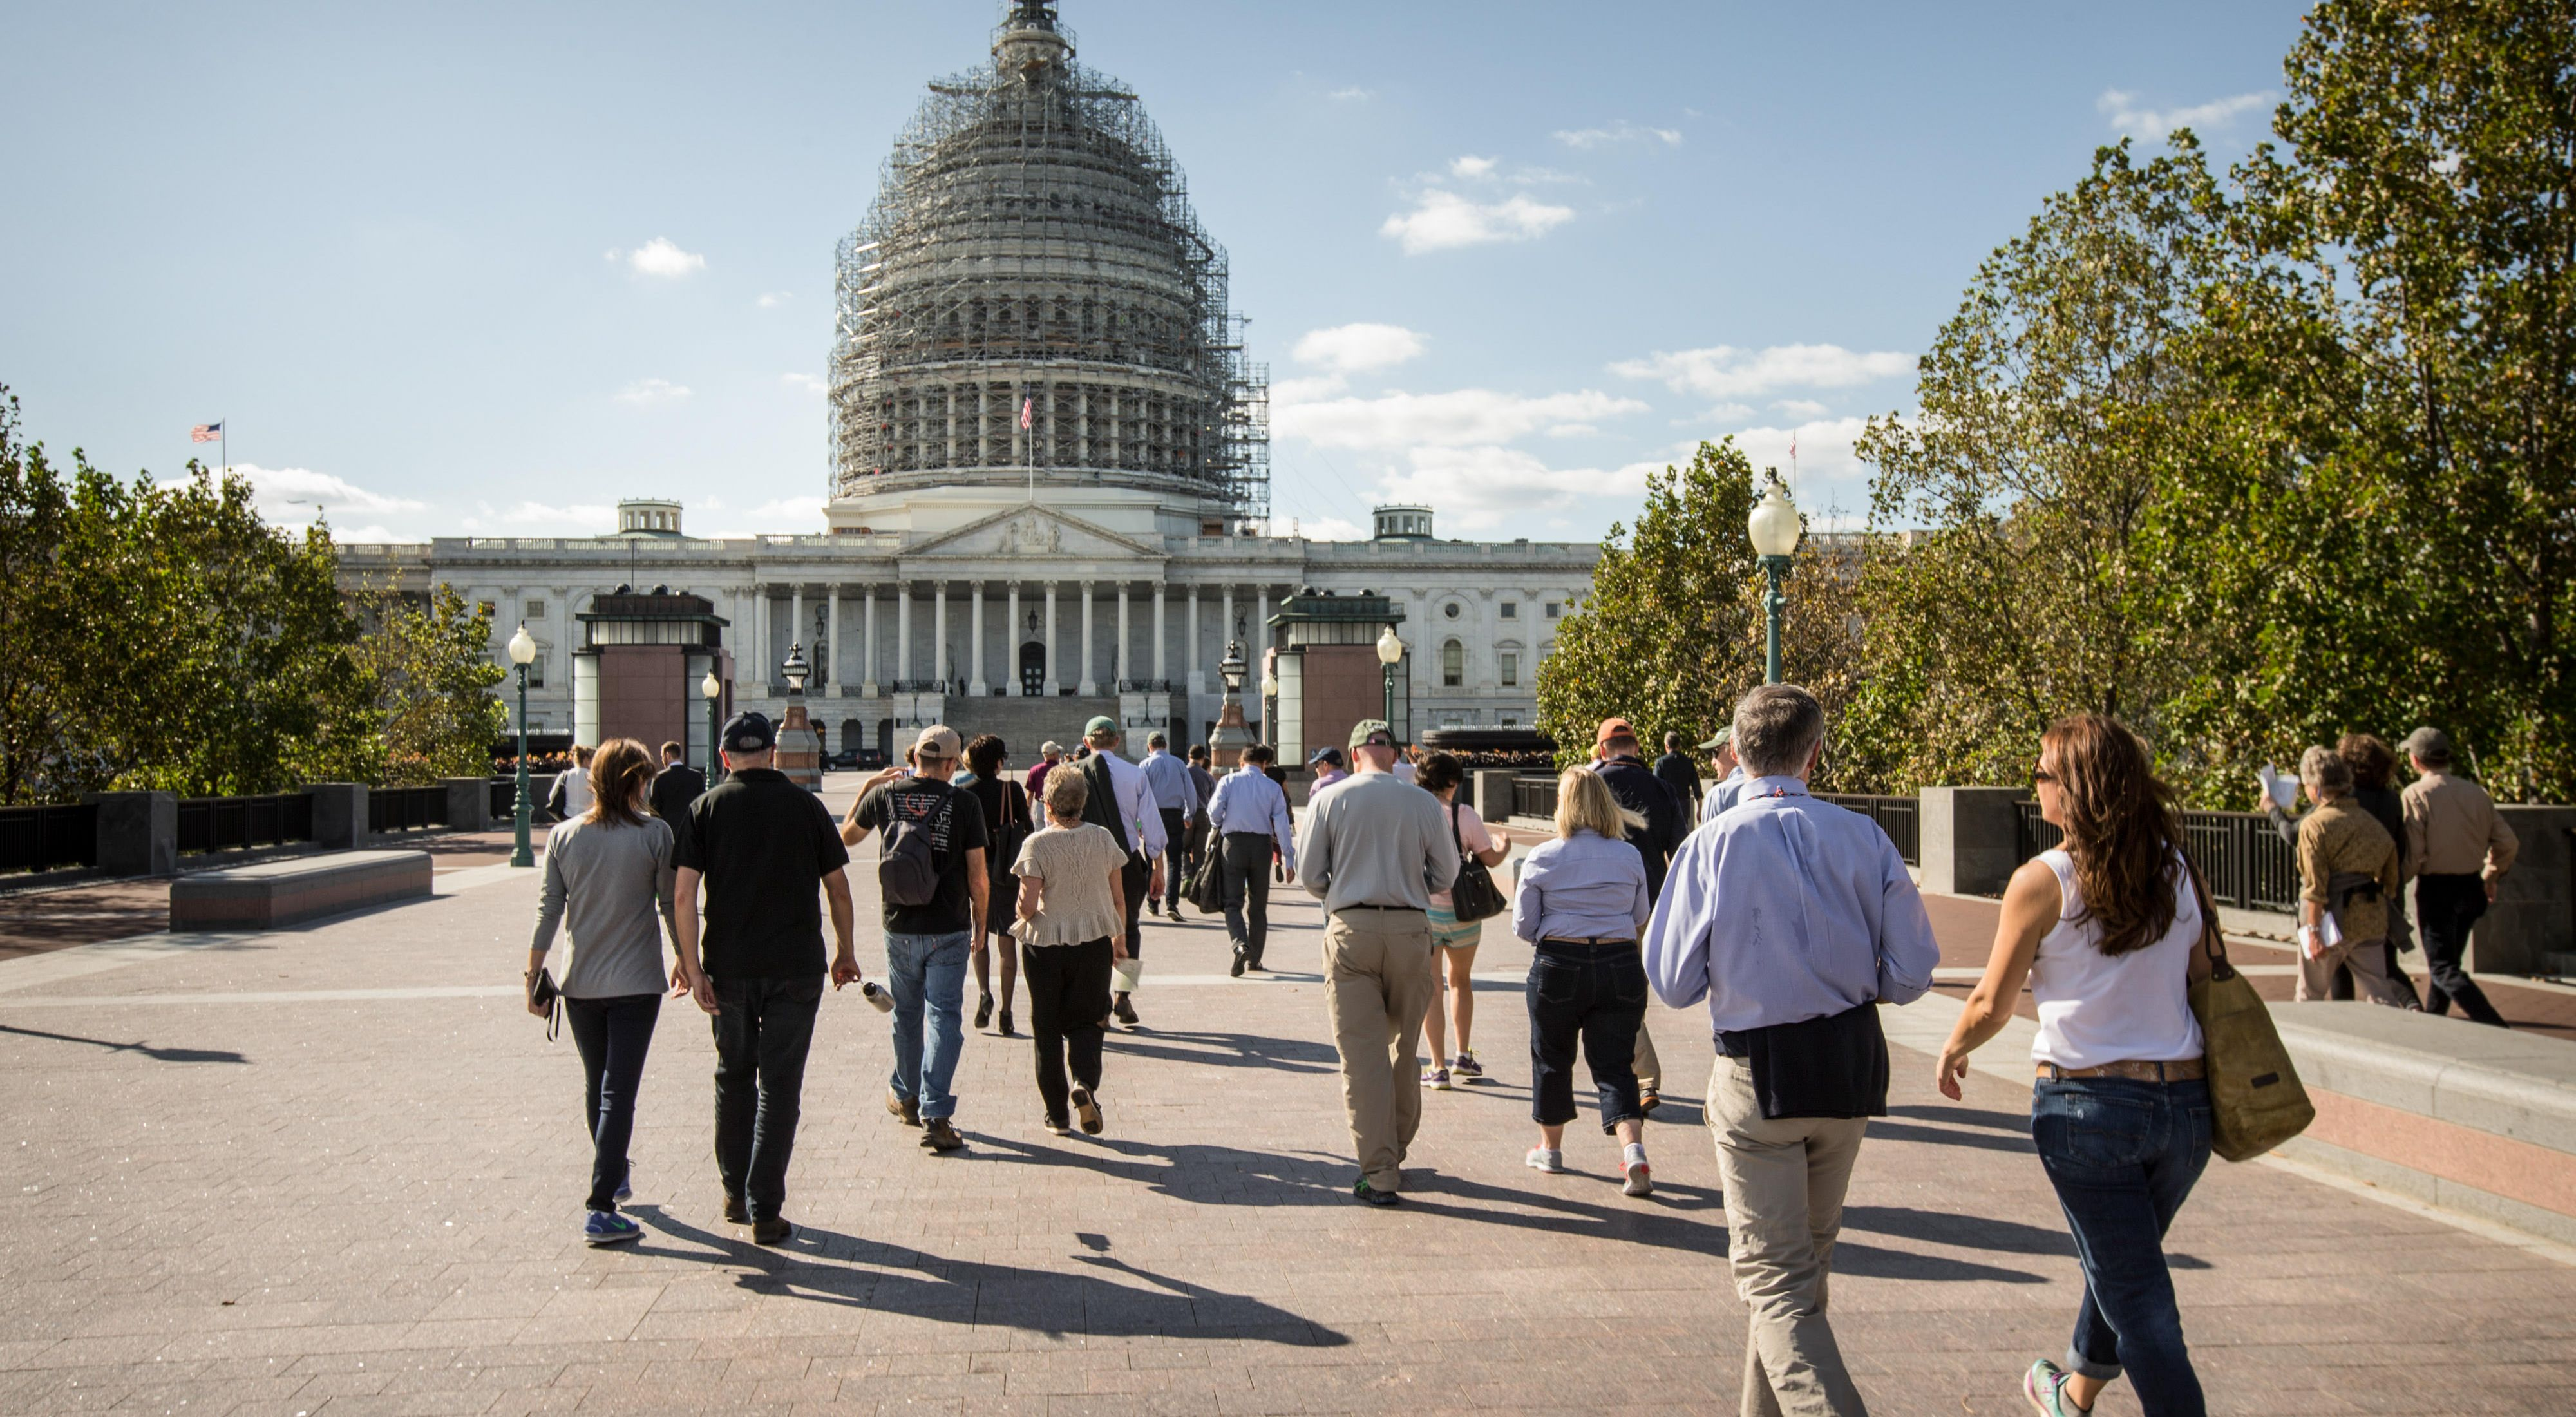 visited Capitol Hill last fall to discuss conservation issues with more than 100 members of Congress.